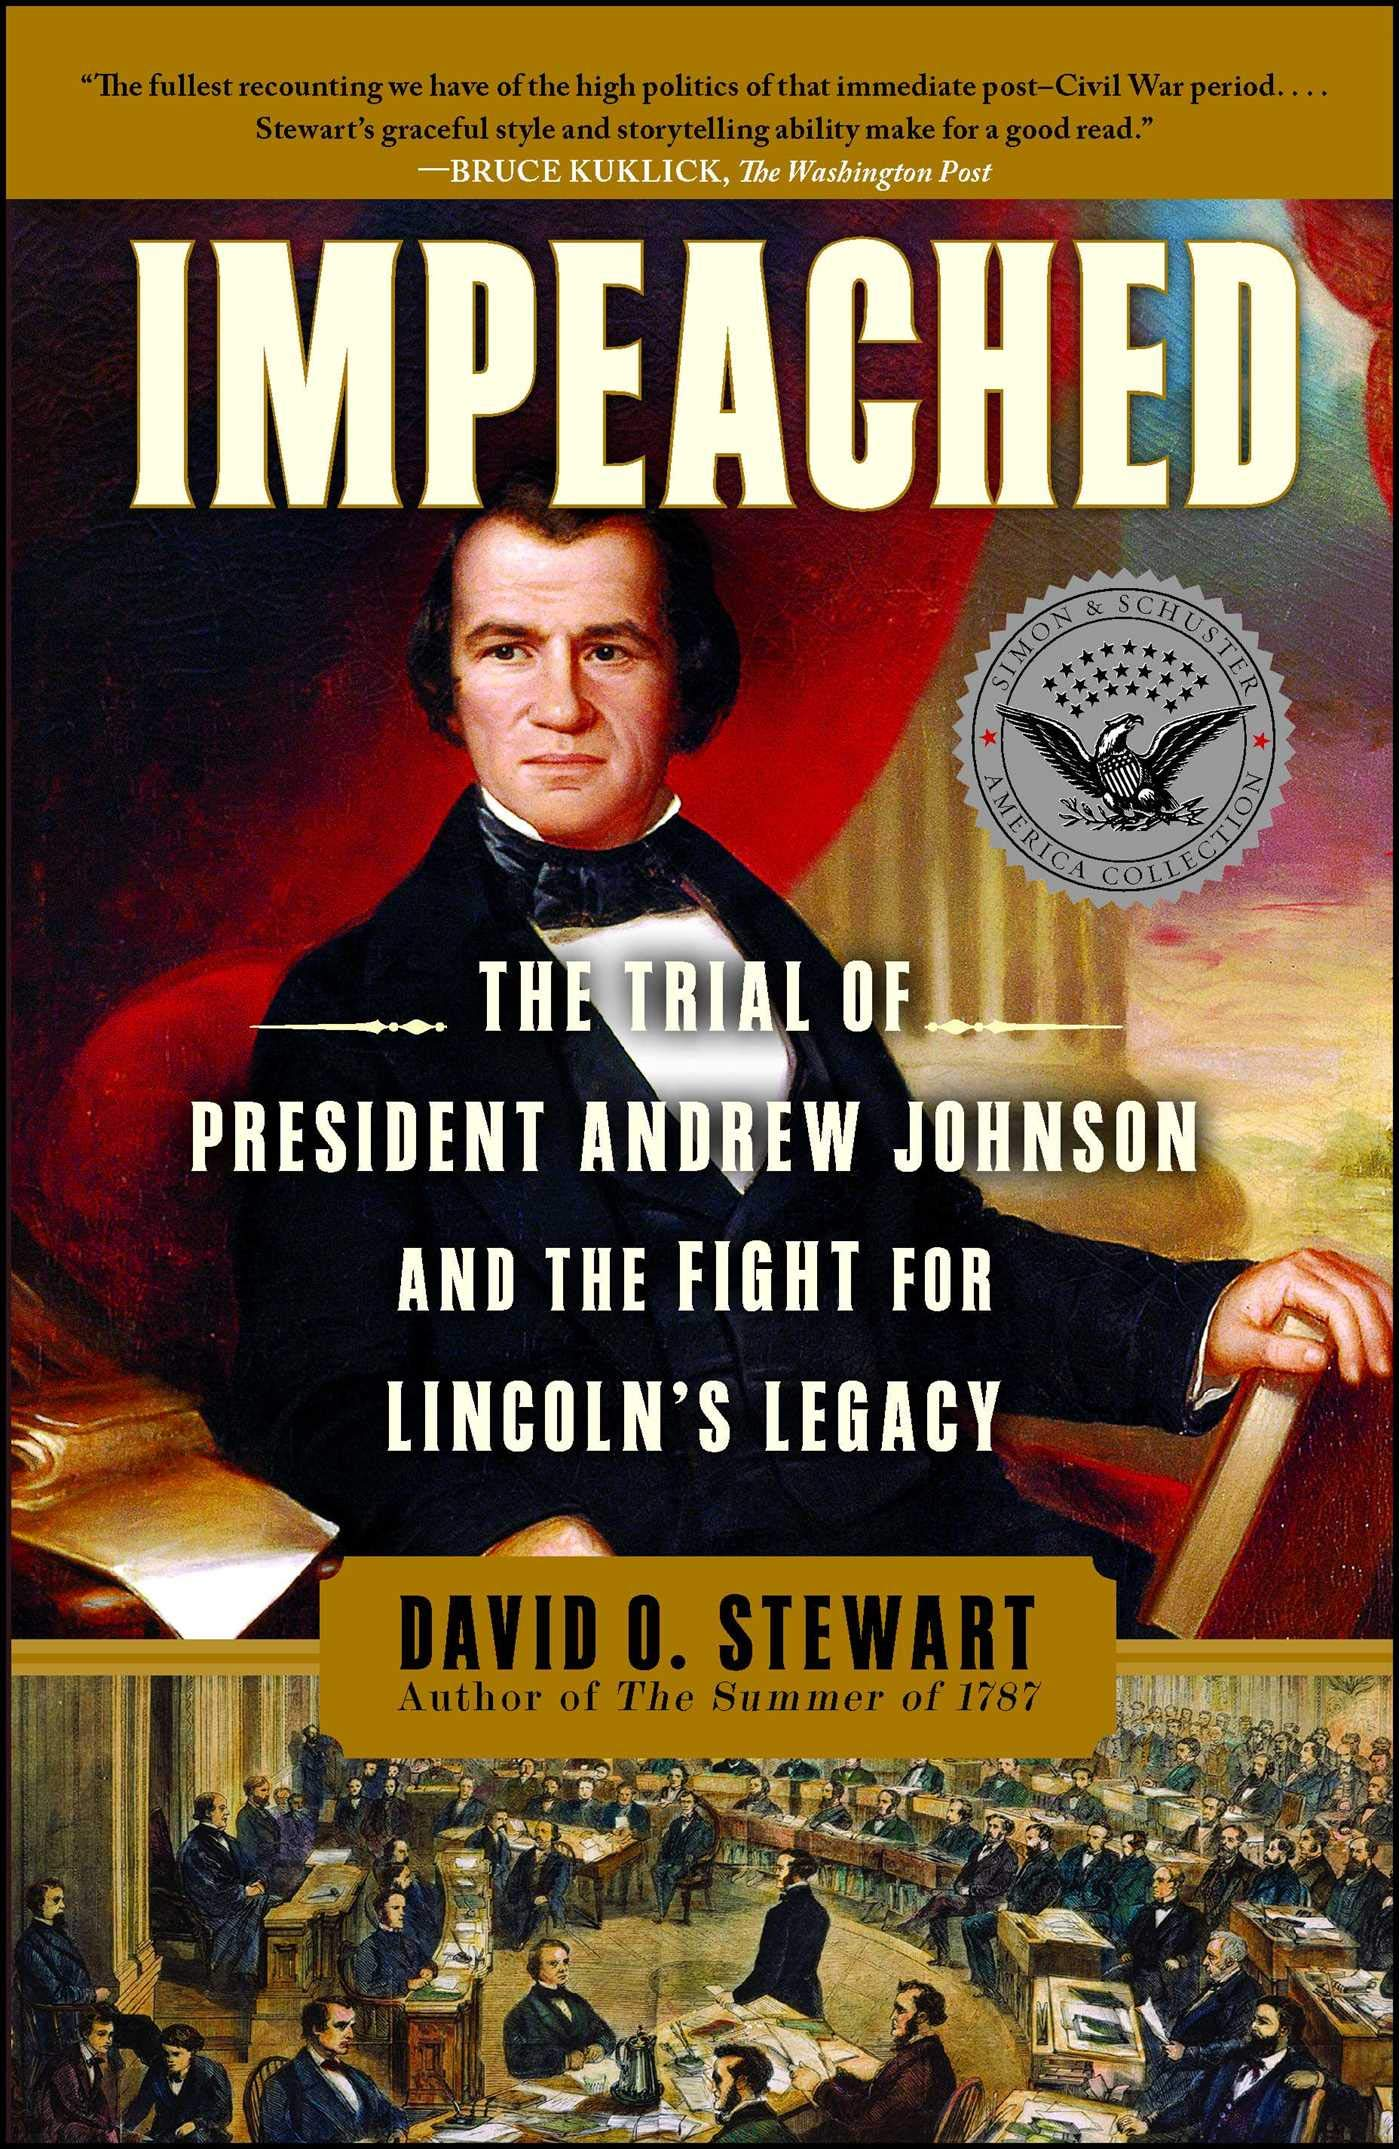 at the conclusion of president andrew johnsons impeachment trial